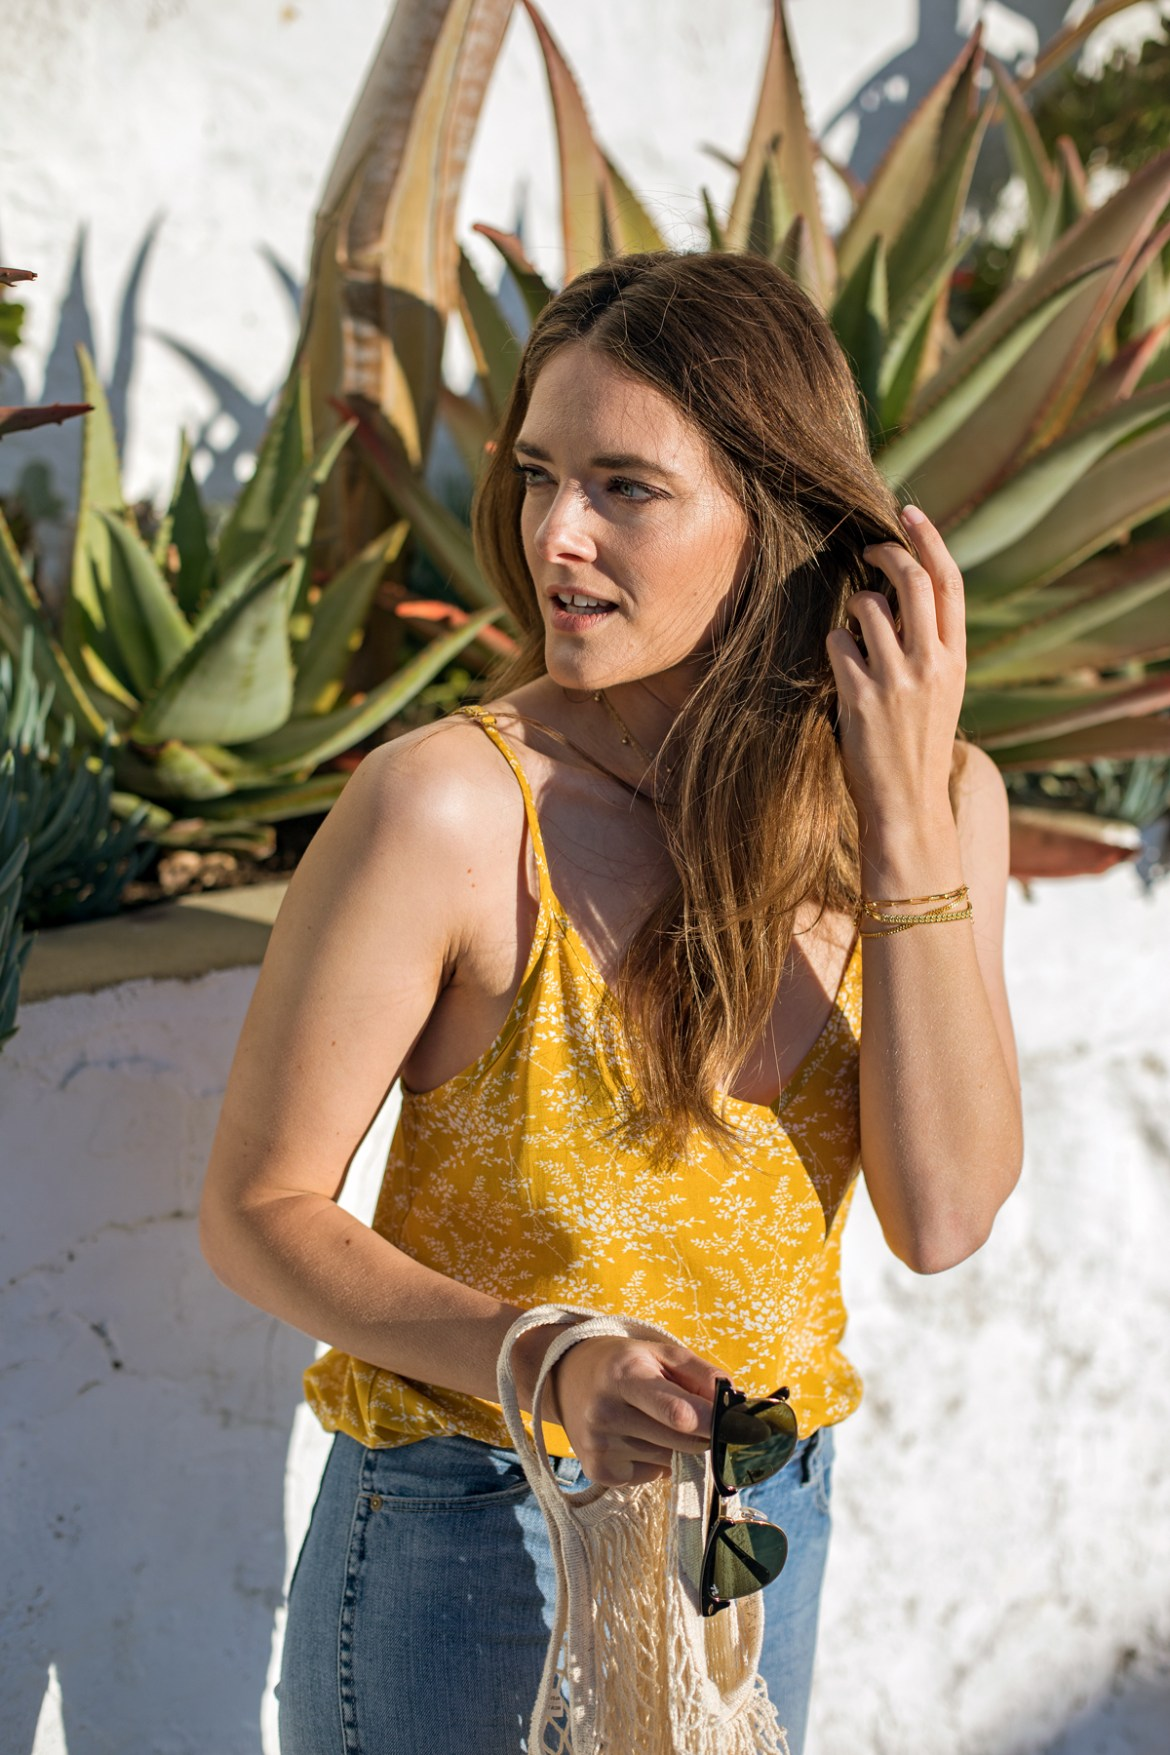 Bohemian Traders for spring 2018 mustard yellow cami top worn by Jenelle Witty from Australian fashion blog Inspiring Wit